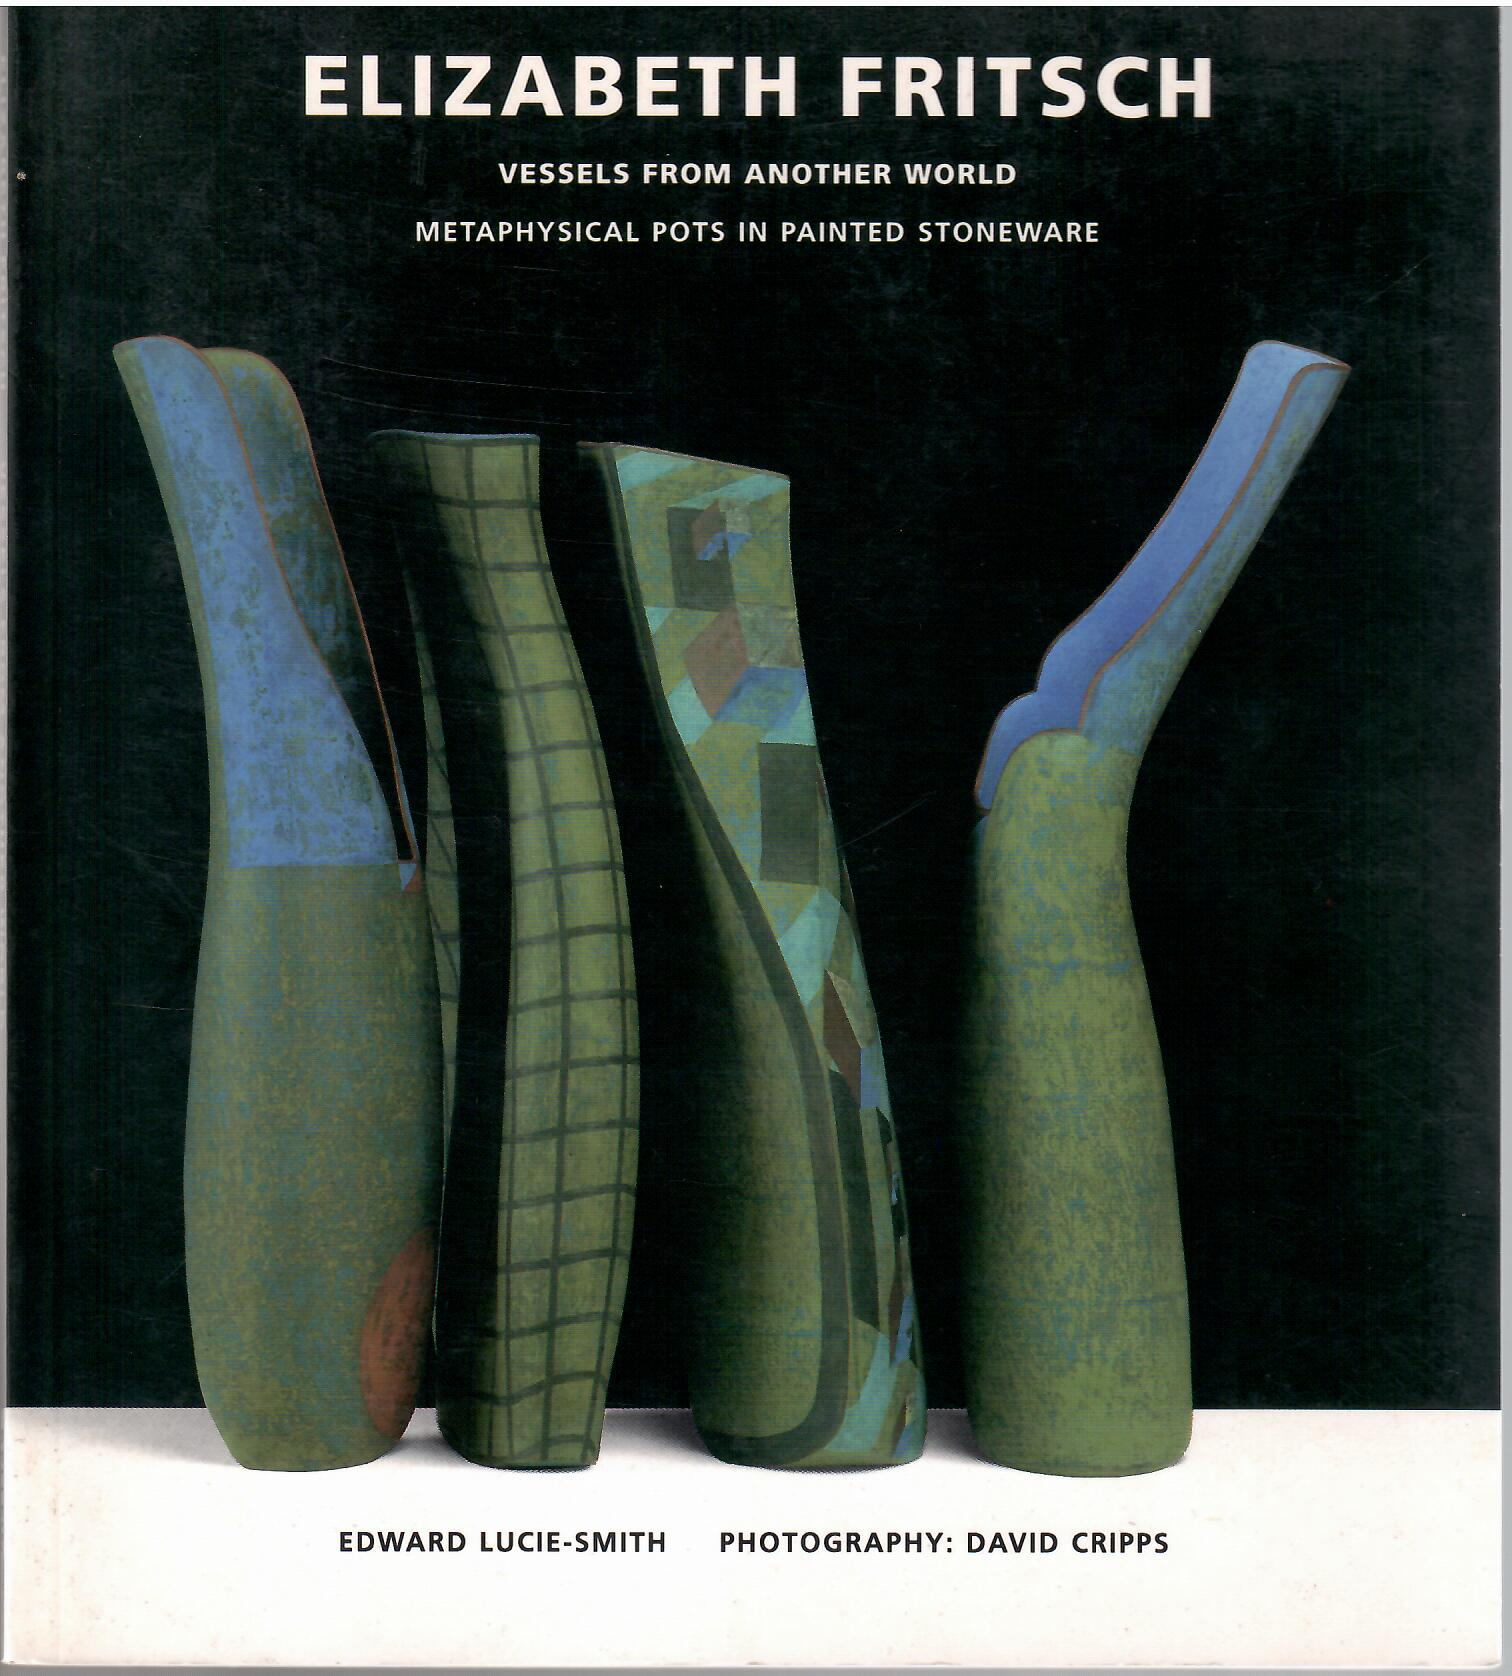 Image for Vessels from Another World Metaphysical Pots in Painted Stoneware; ELIZABETH FRITSCH